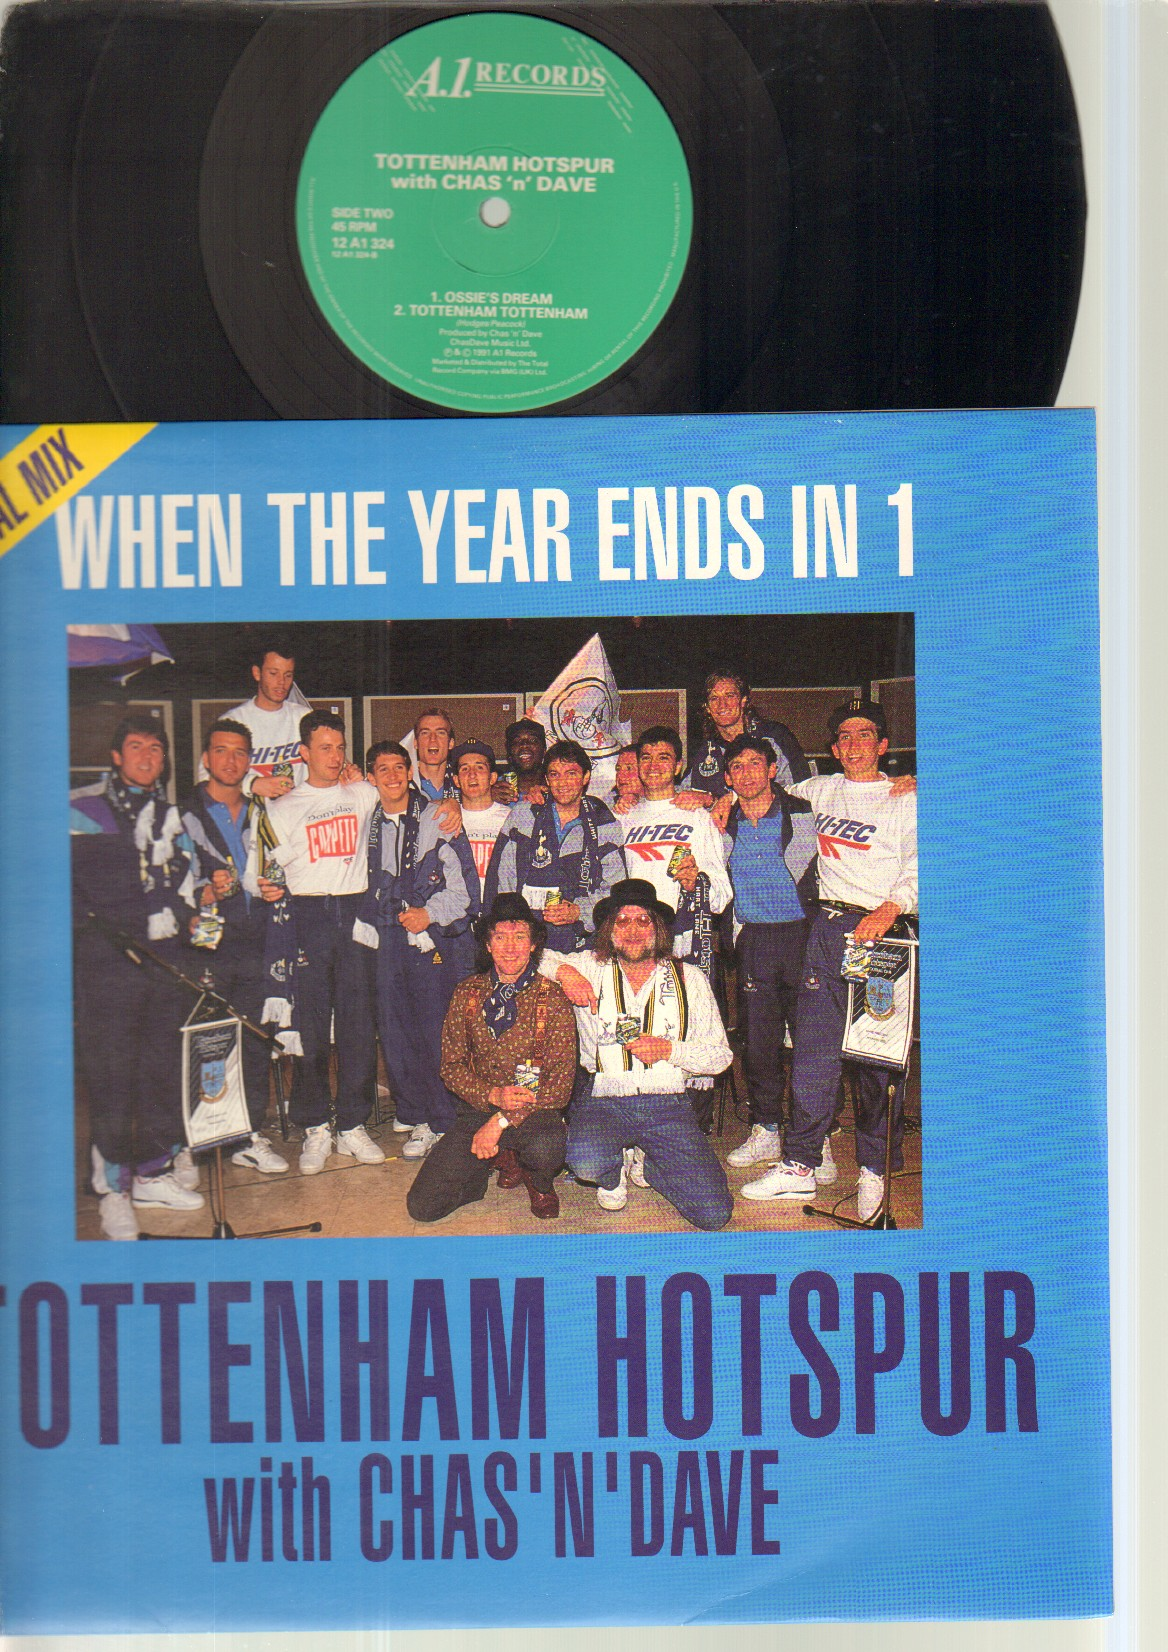 TOTTENHAM HOTSPUR WITH CHAS N DAVE - When The Year Ends In 1 - Maxi 45T